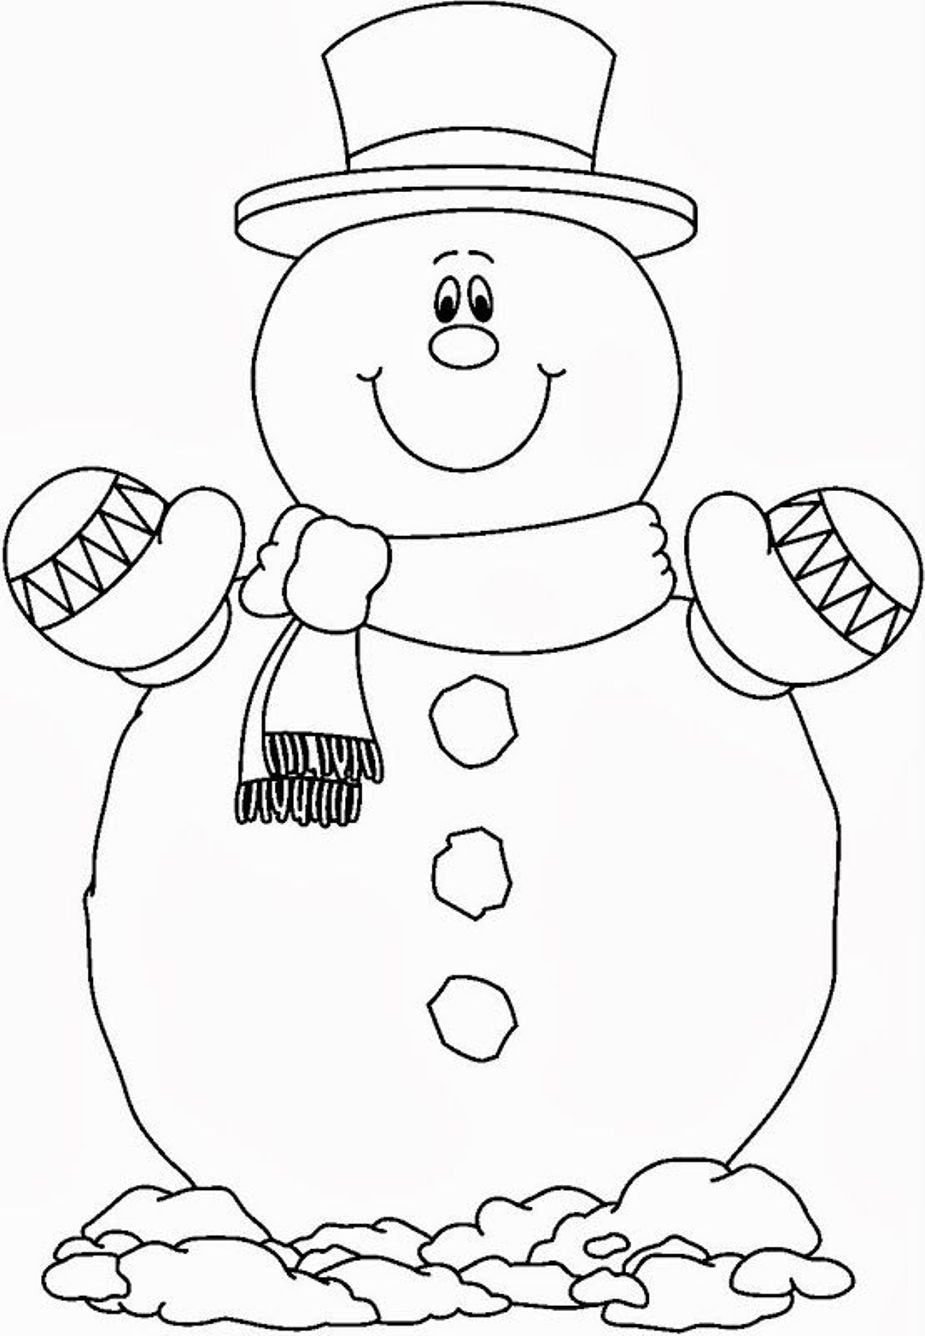 christmas crafts coloring pages - photo#10